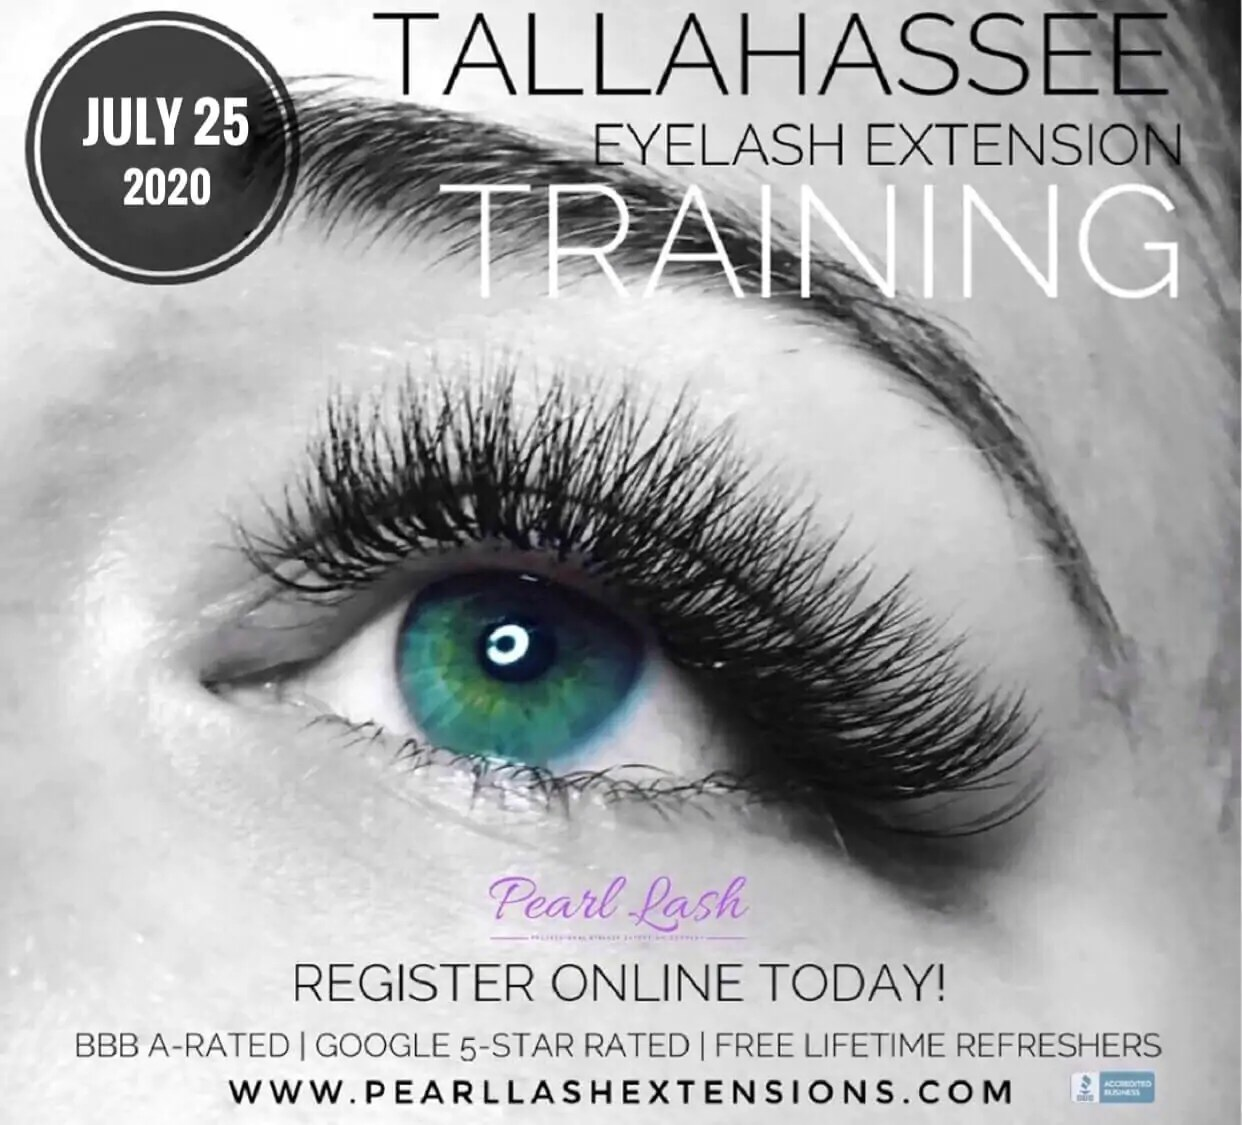 Tallahassee Classic Eyelash Extension Training by Pearl Lash